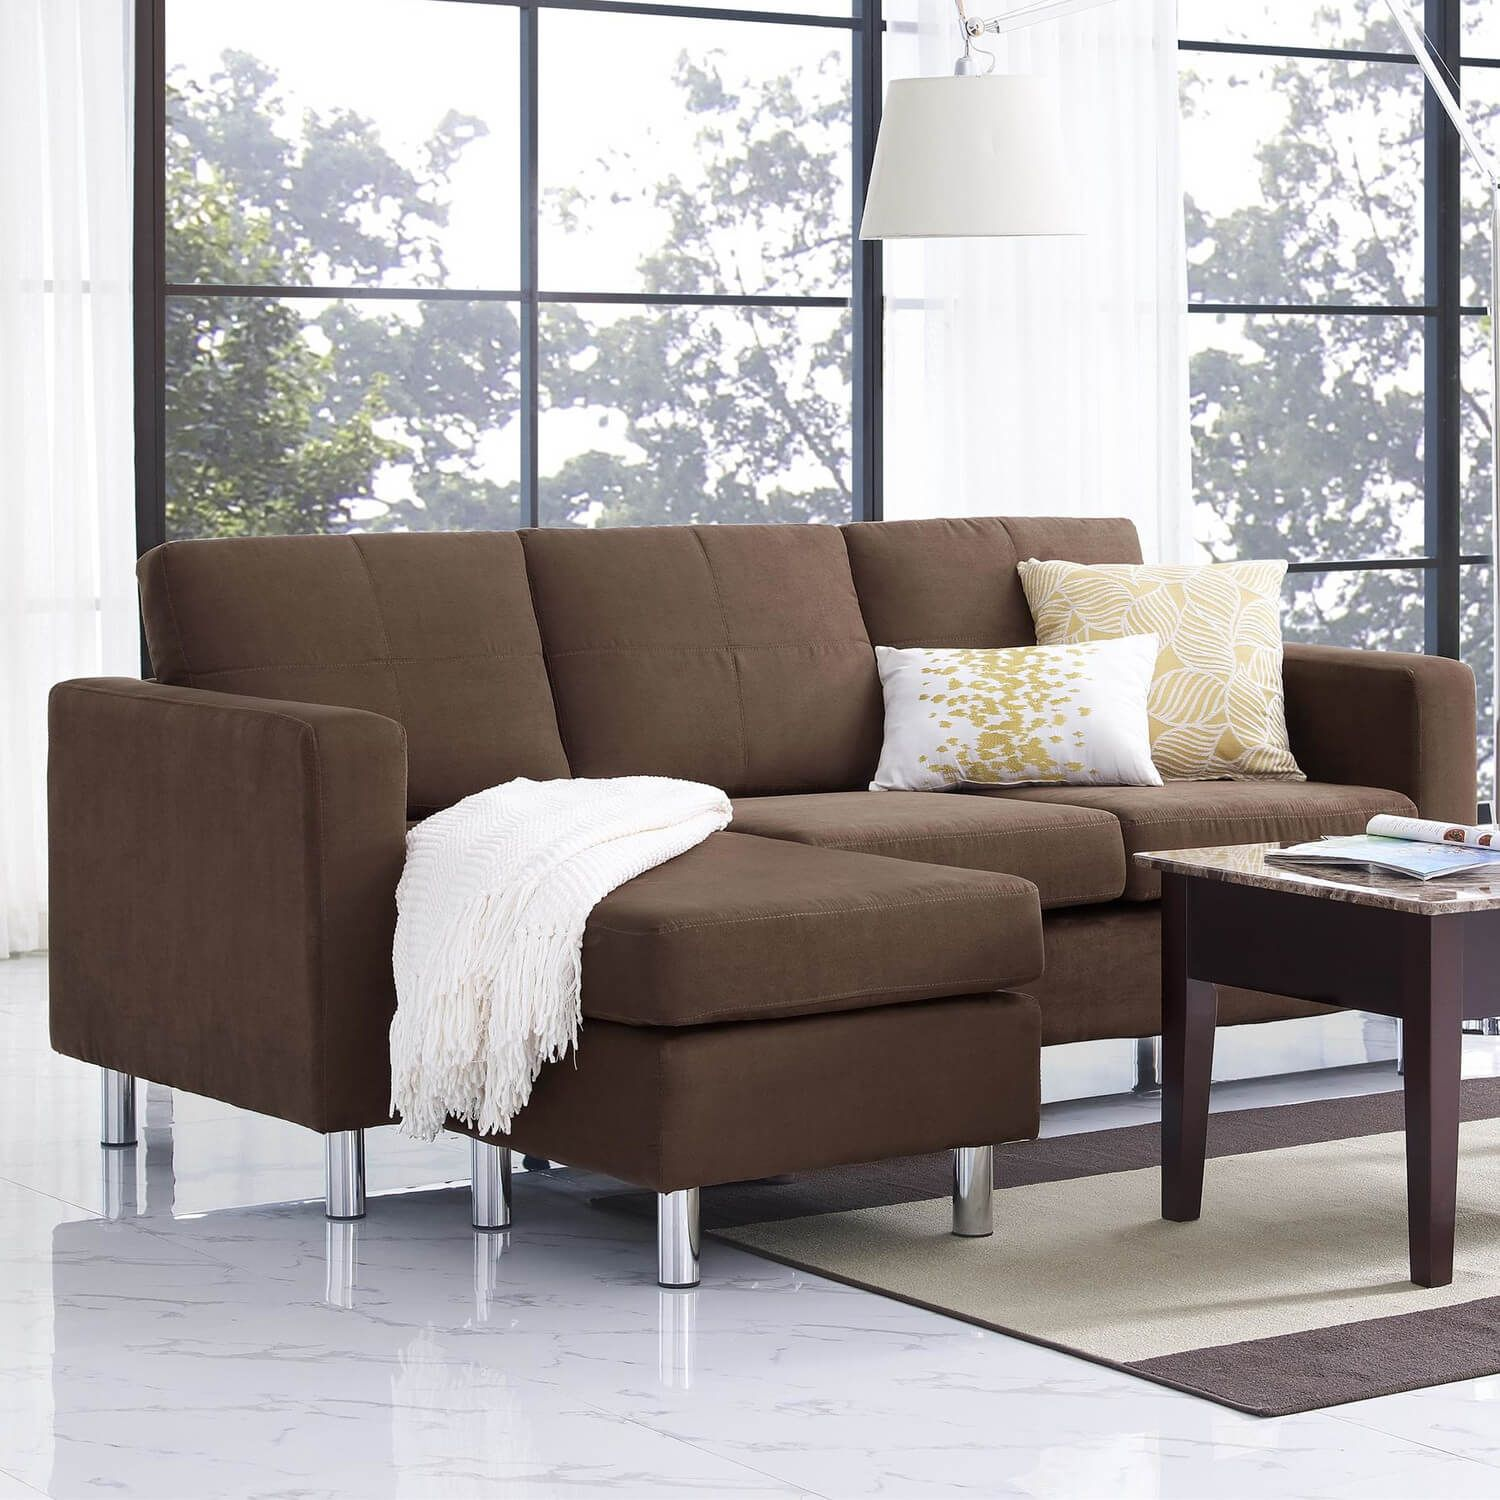 Cool Sectional Couch Under 500 Great 16 For Your Living Room